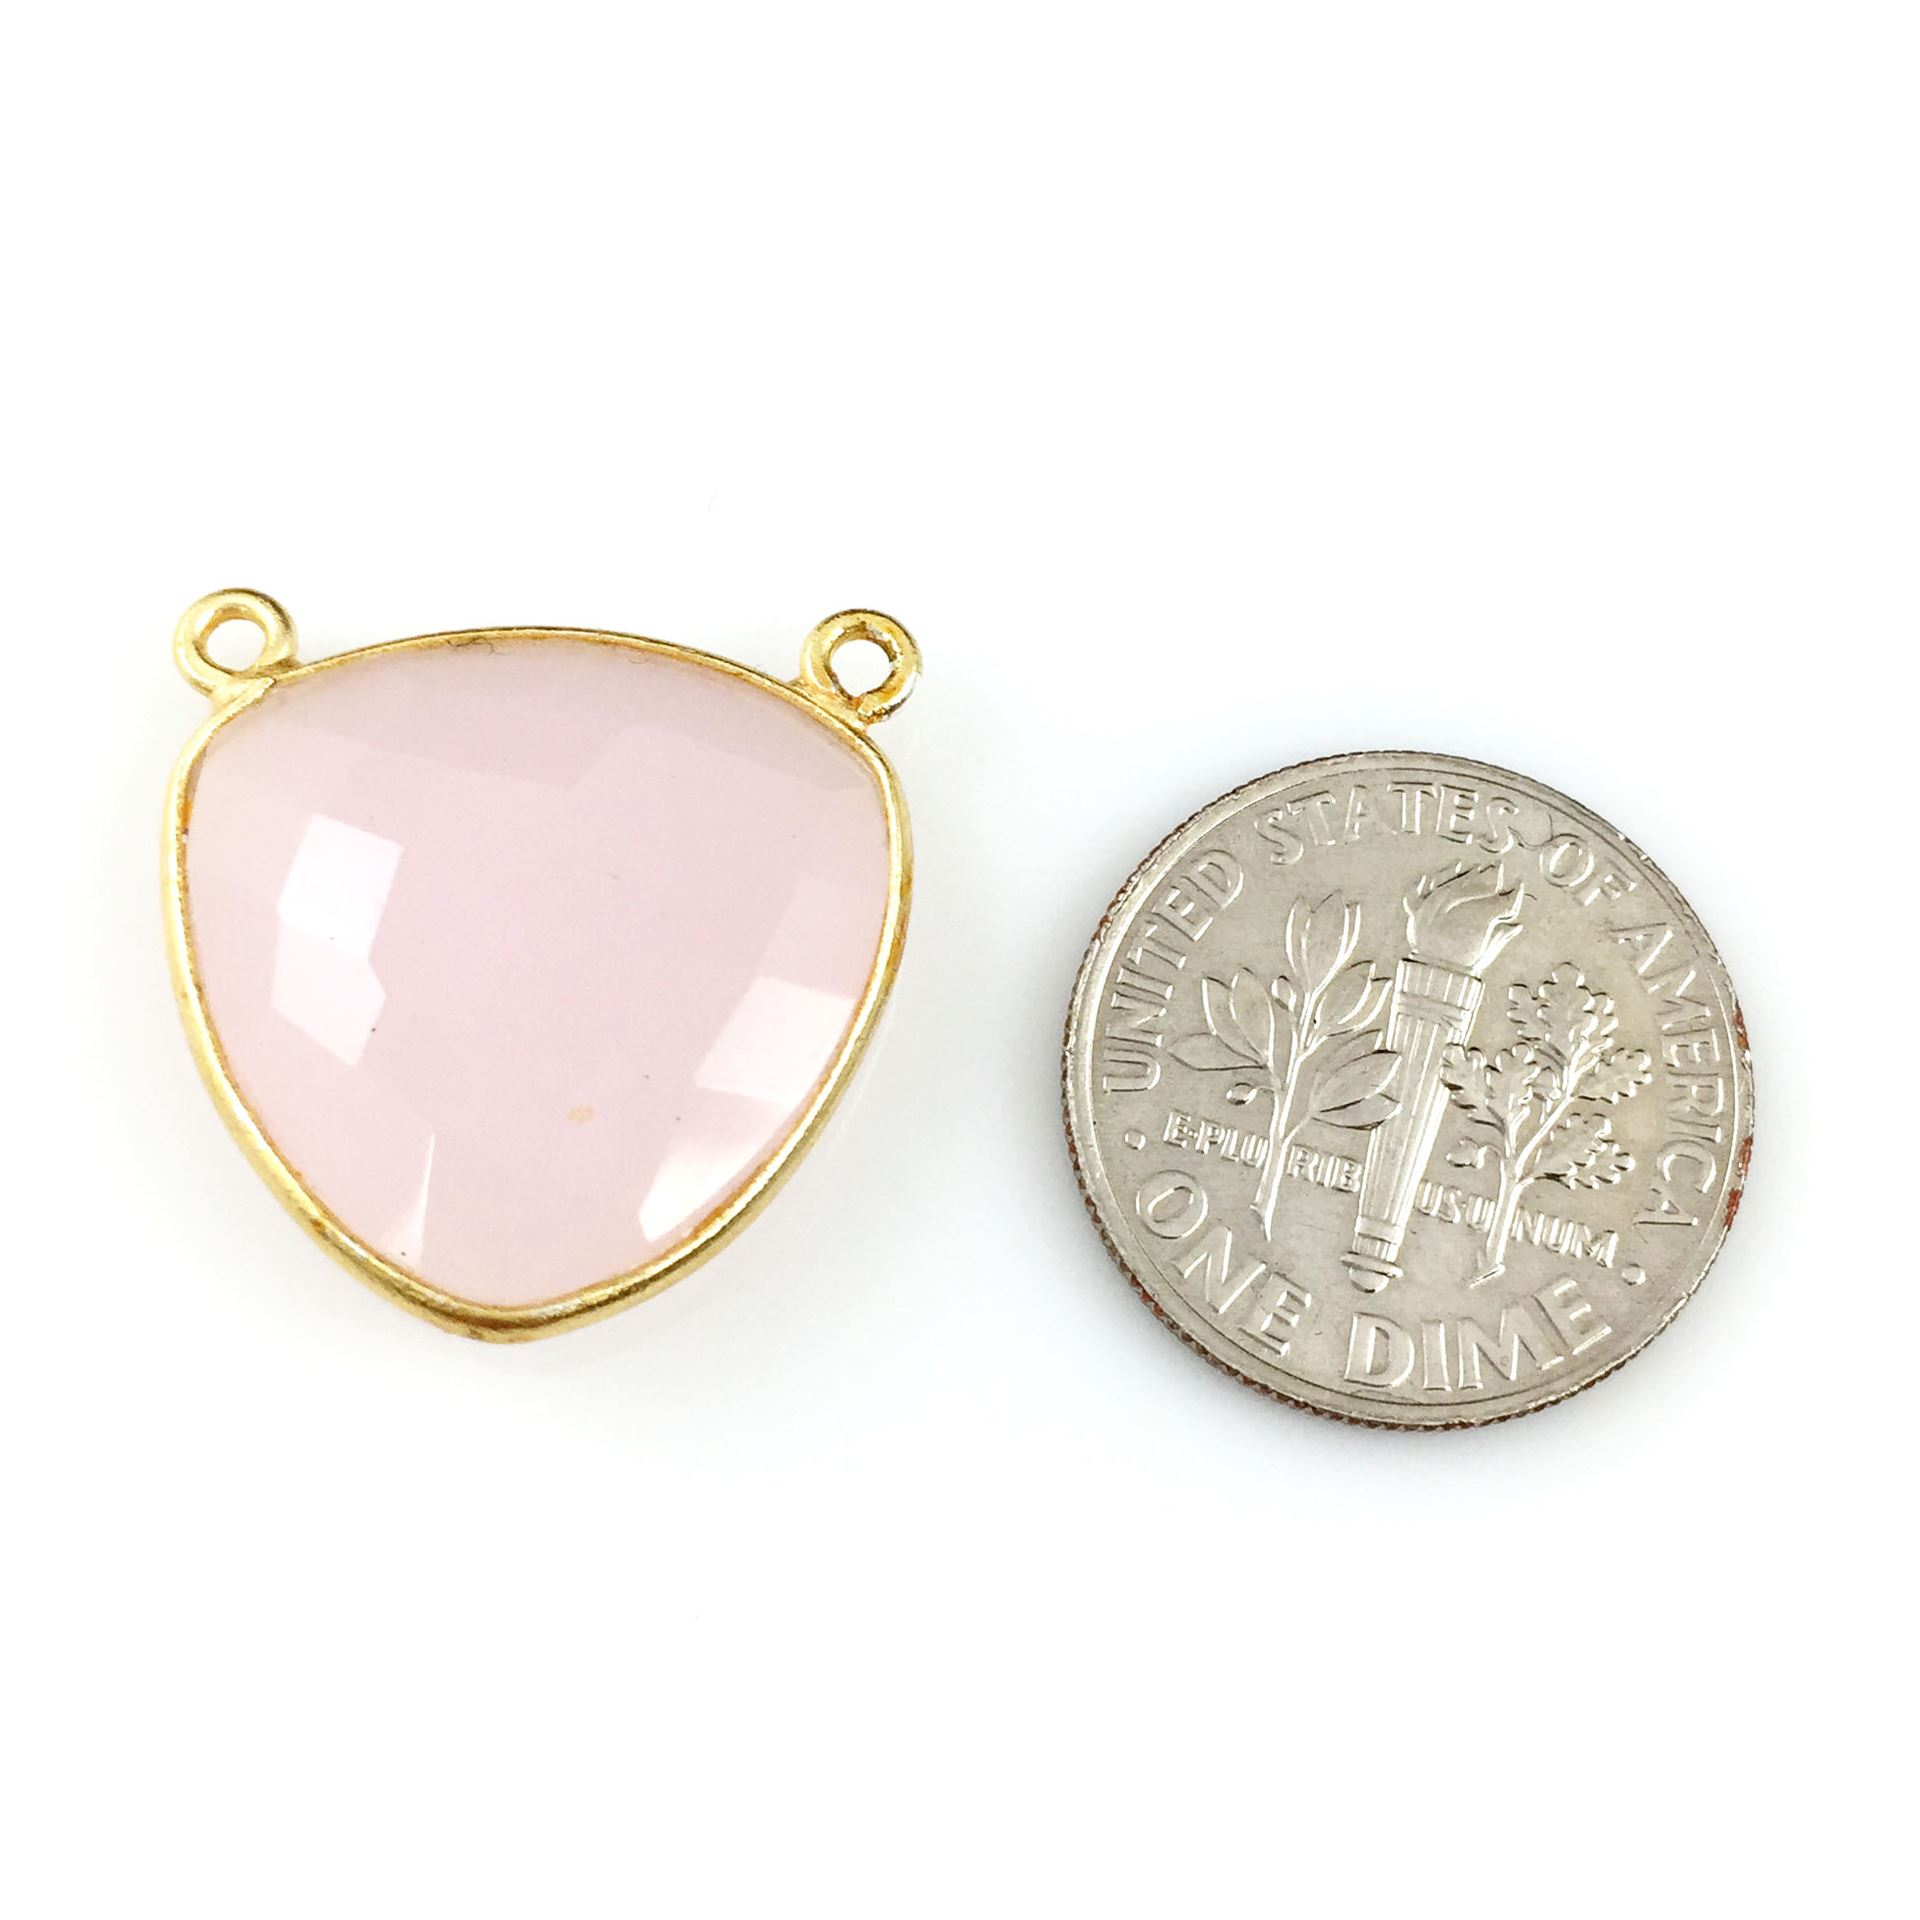 Bezel Gemstone Connector Pendant - Pink Chalcedony - Gold plated Sterling Silver - Large Trillion Shaped Faceted - 18 mm - 1 piece